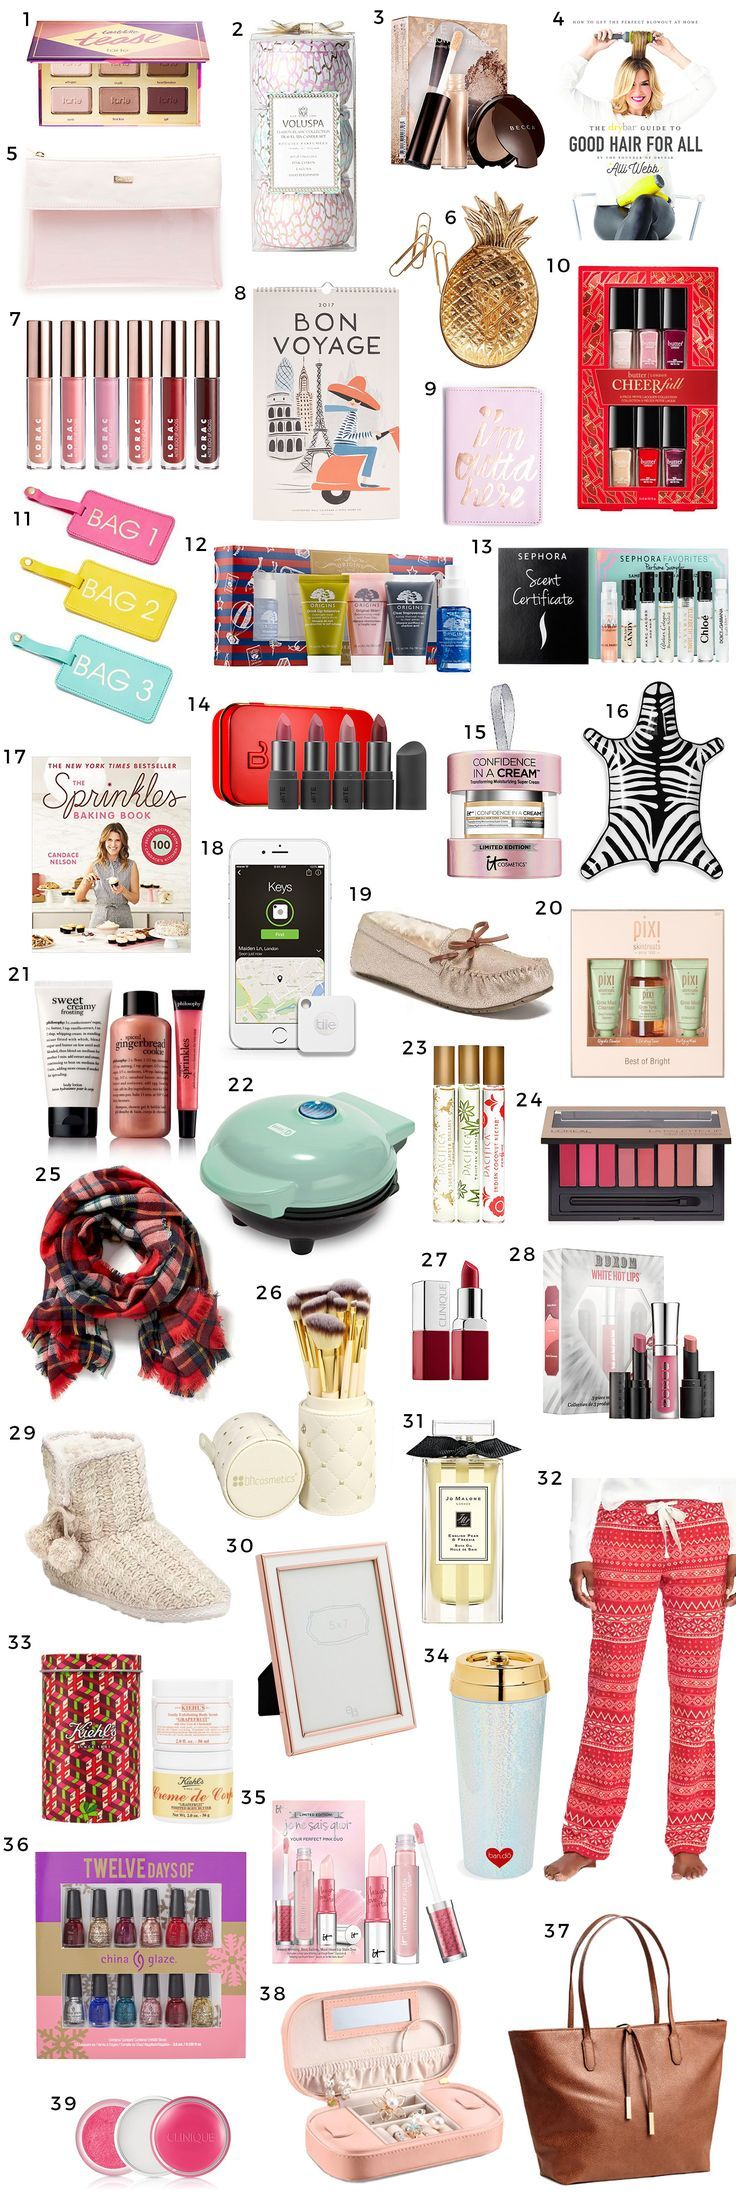 The Best Christmas Gift Ideas For Women Under 25 2016 Ultimate Guide By Florida Beauty And Fashion Blogger Ashley Brooke Nicholas